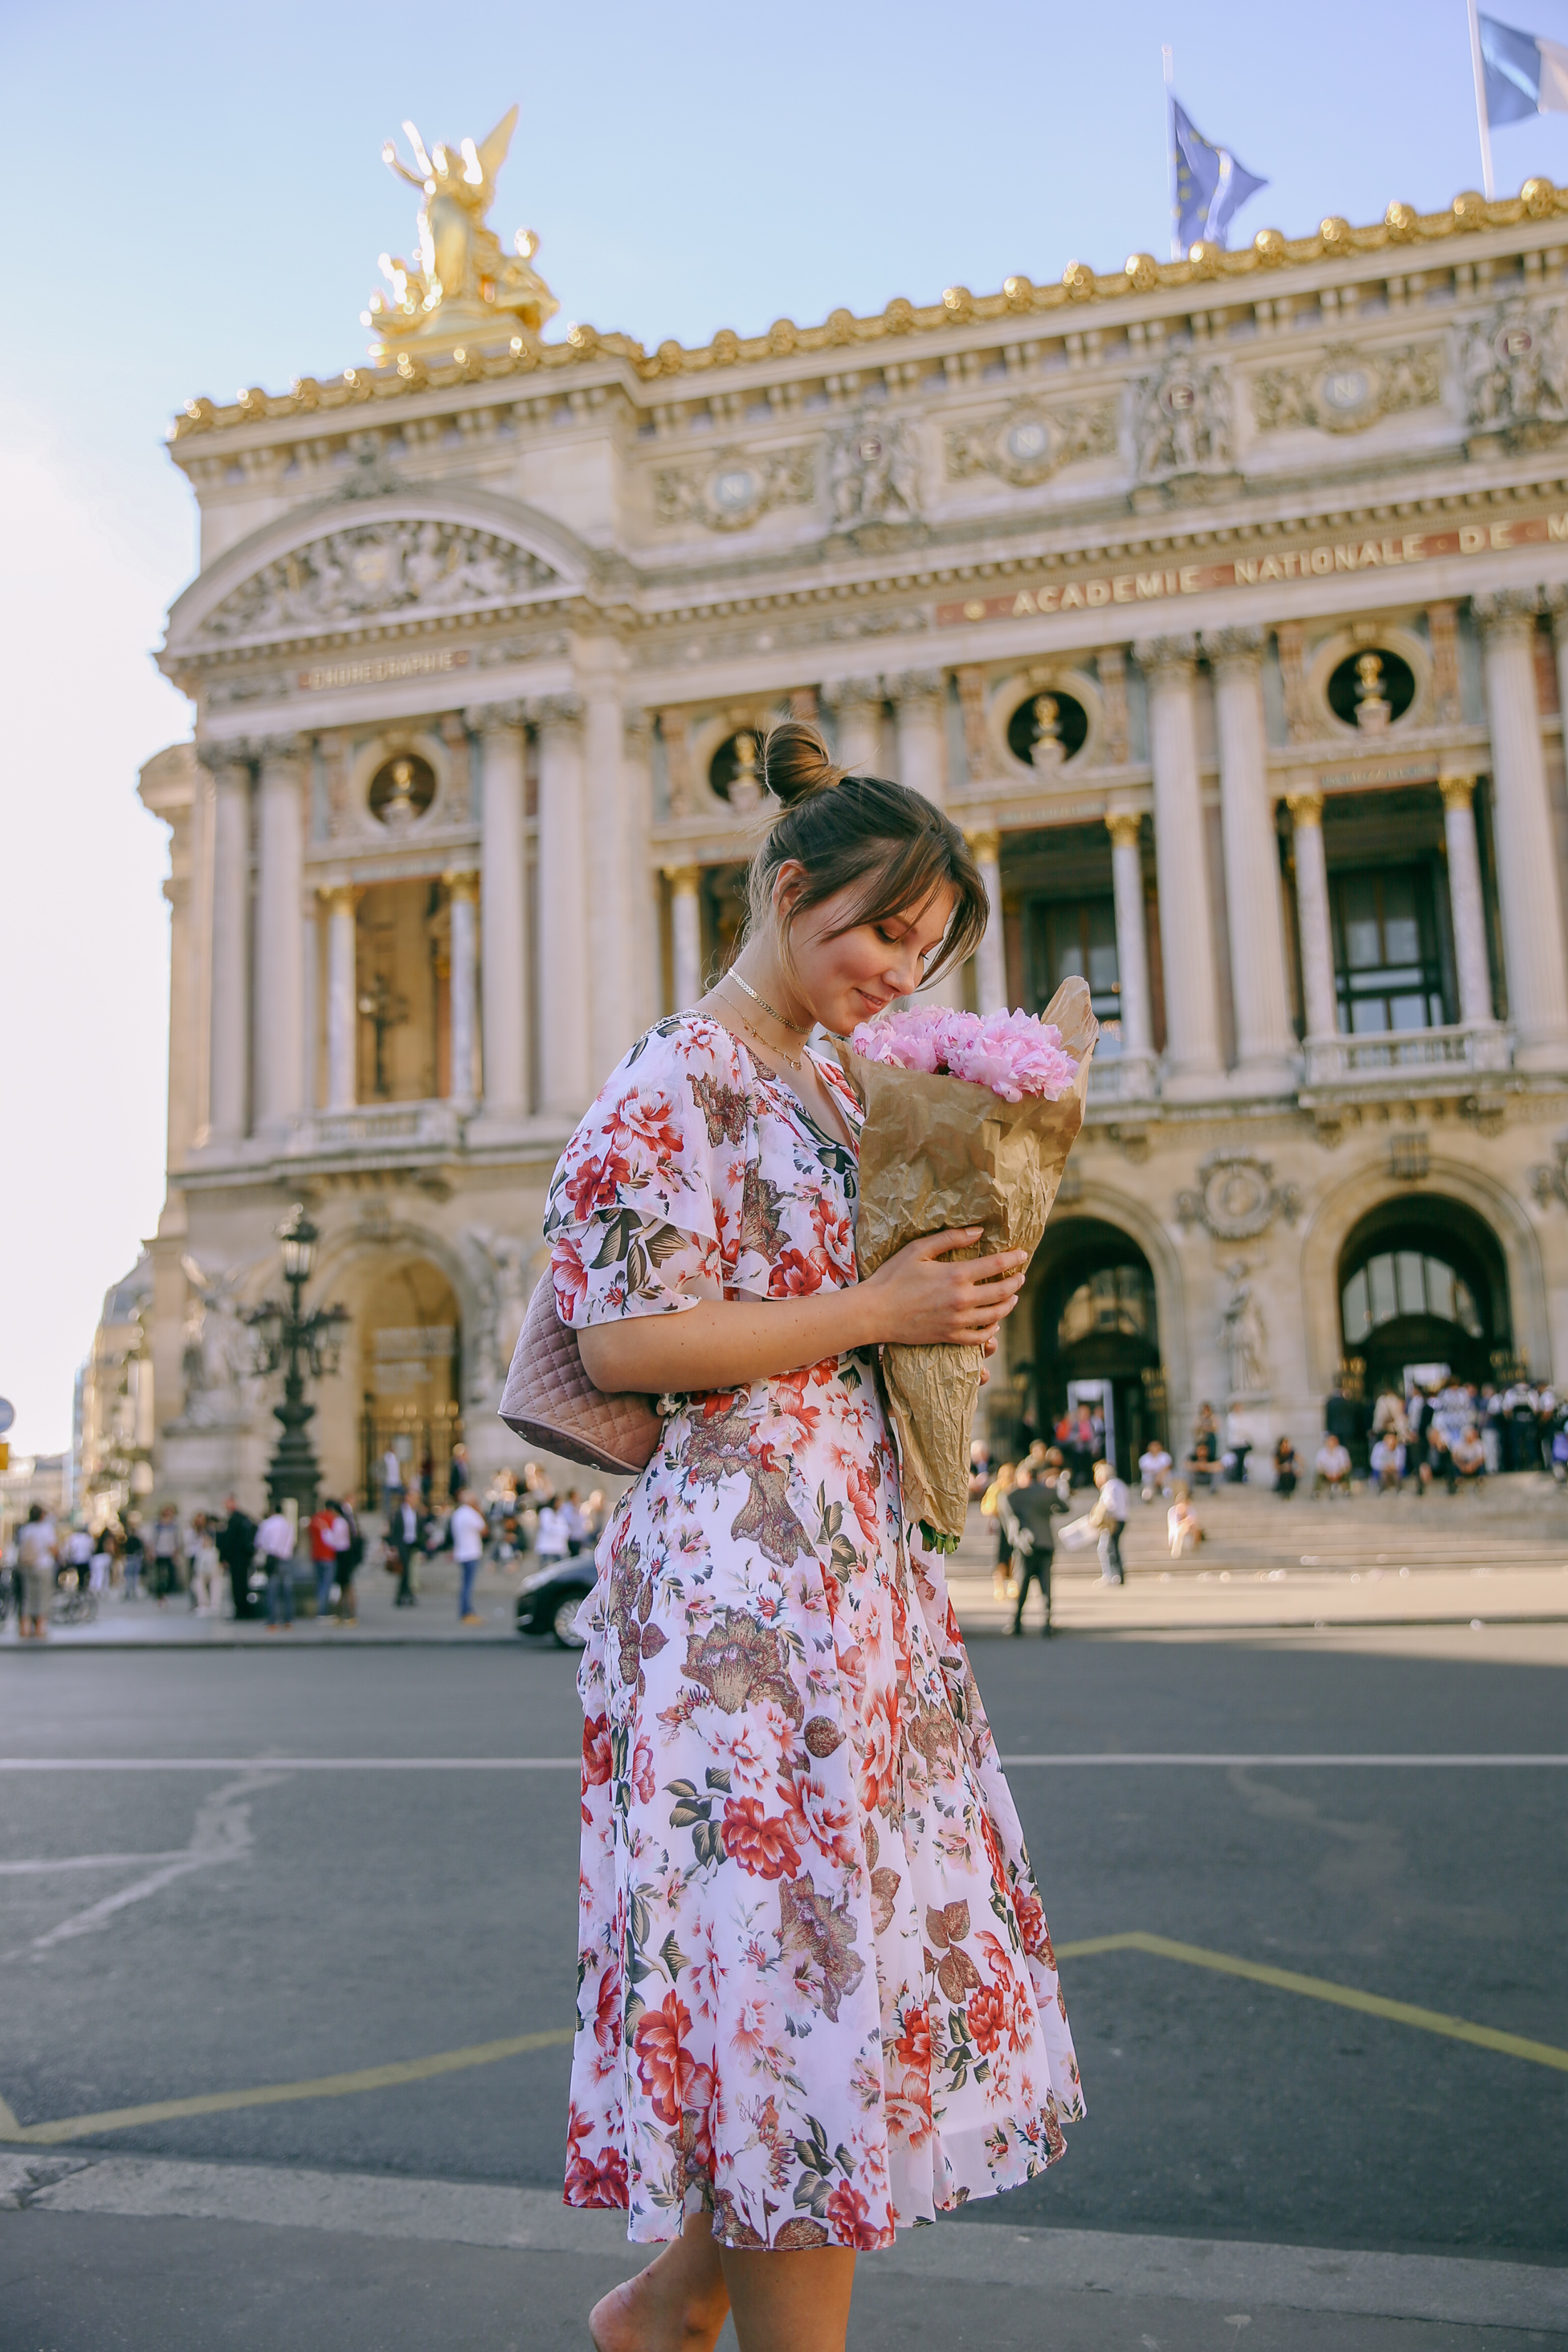 paris-peonies-girl